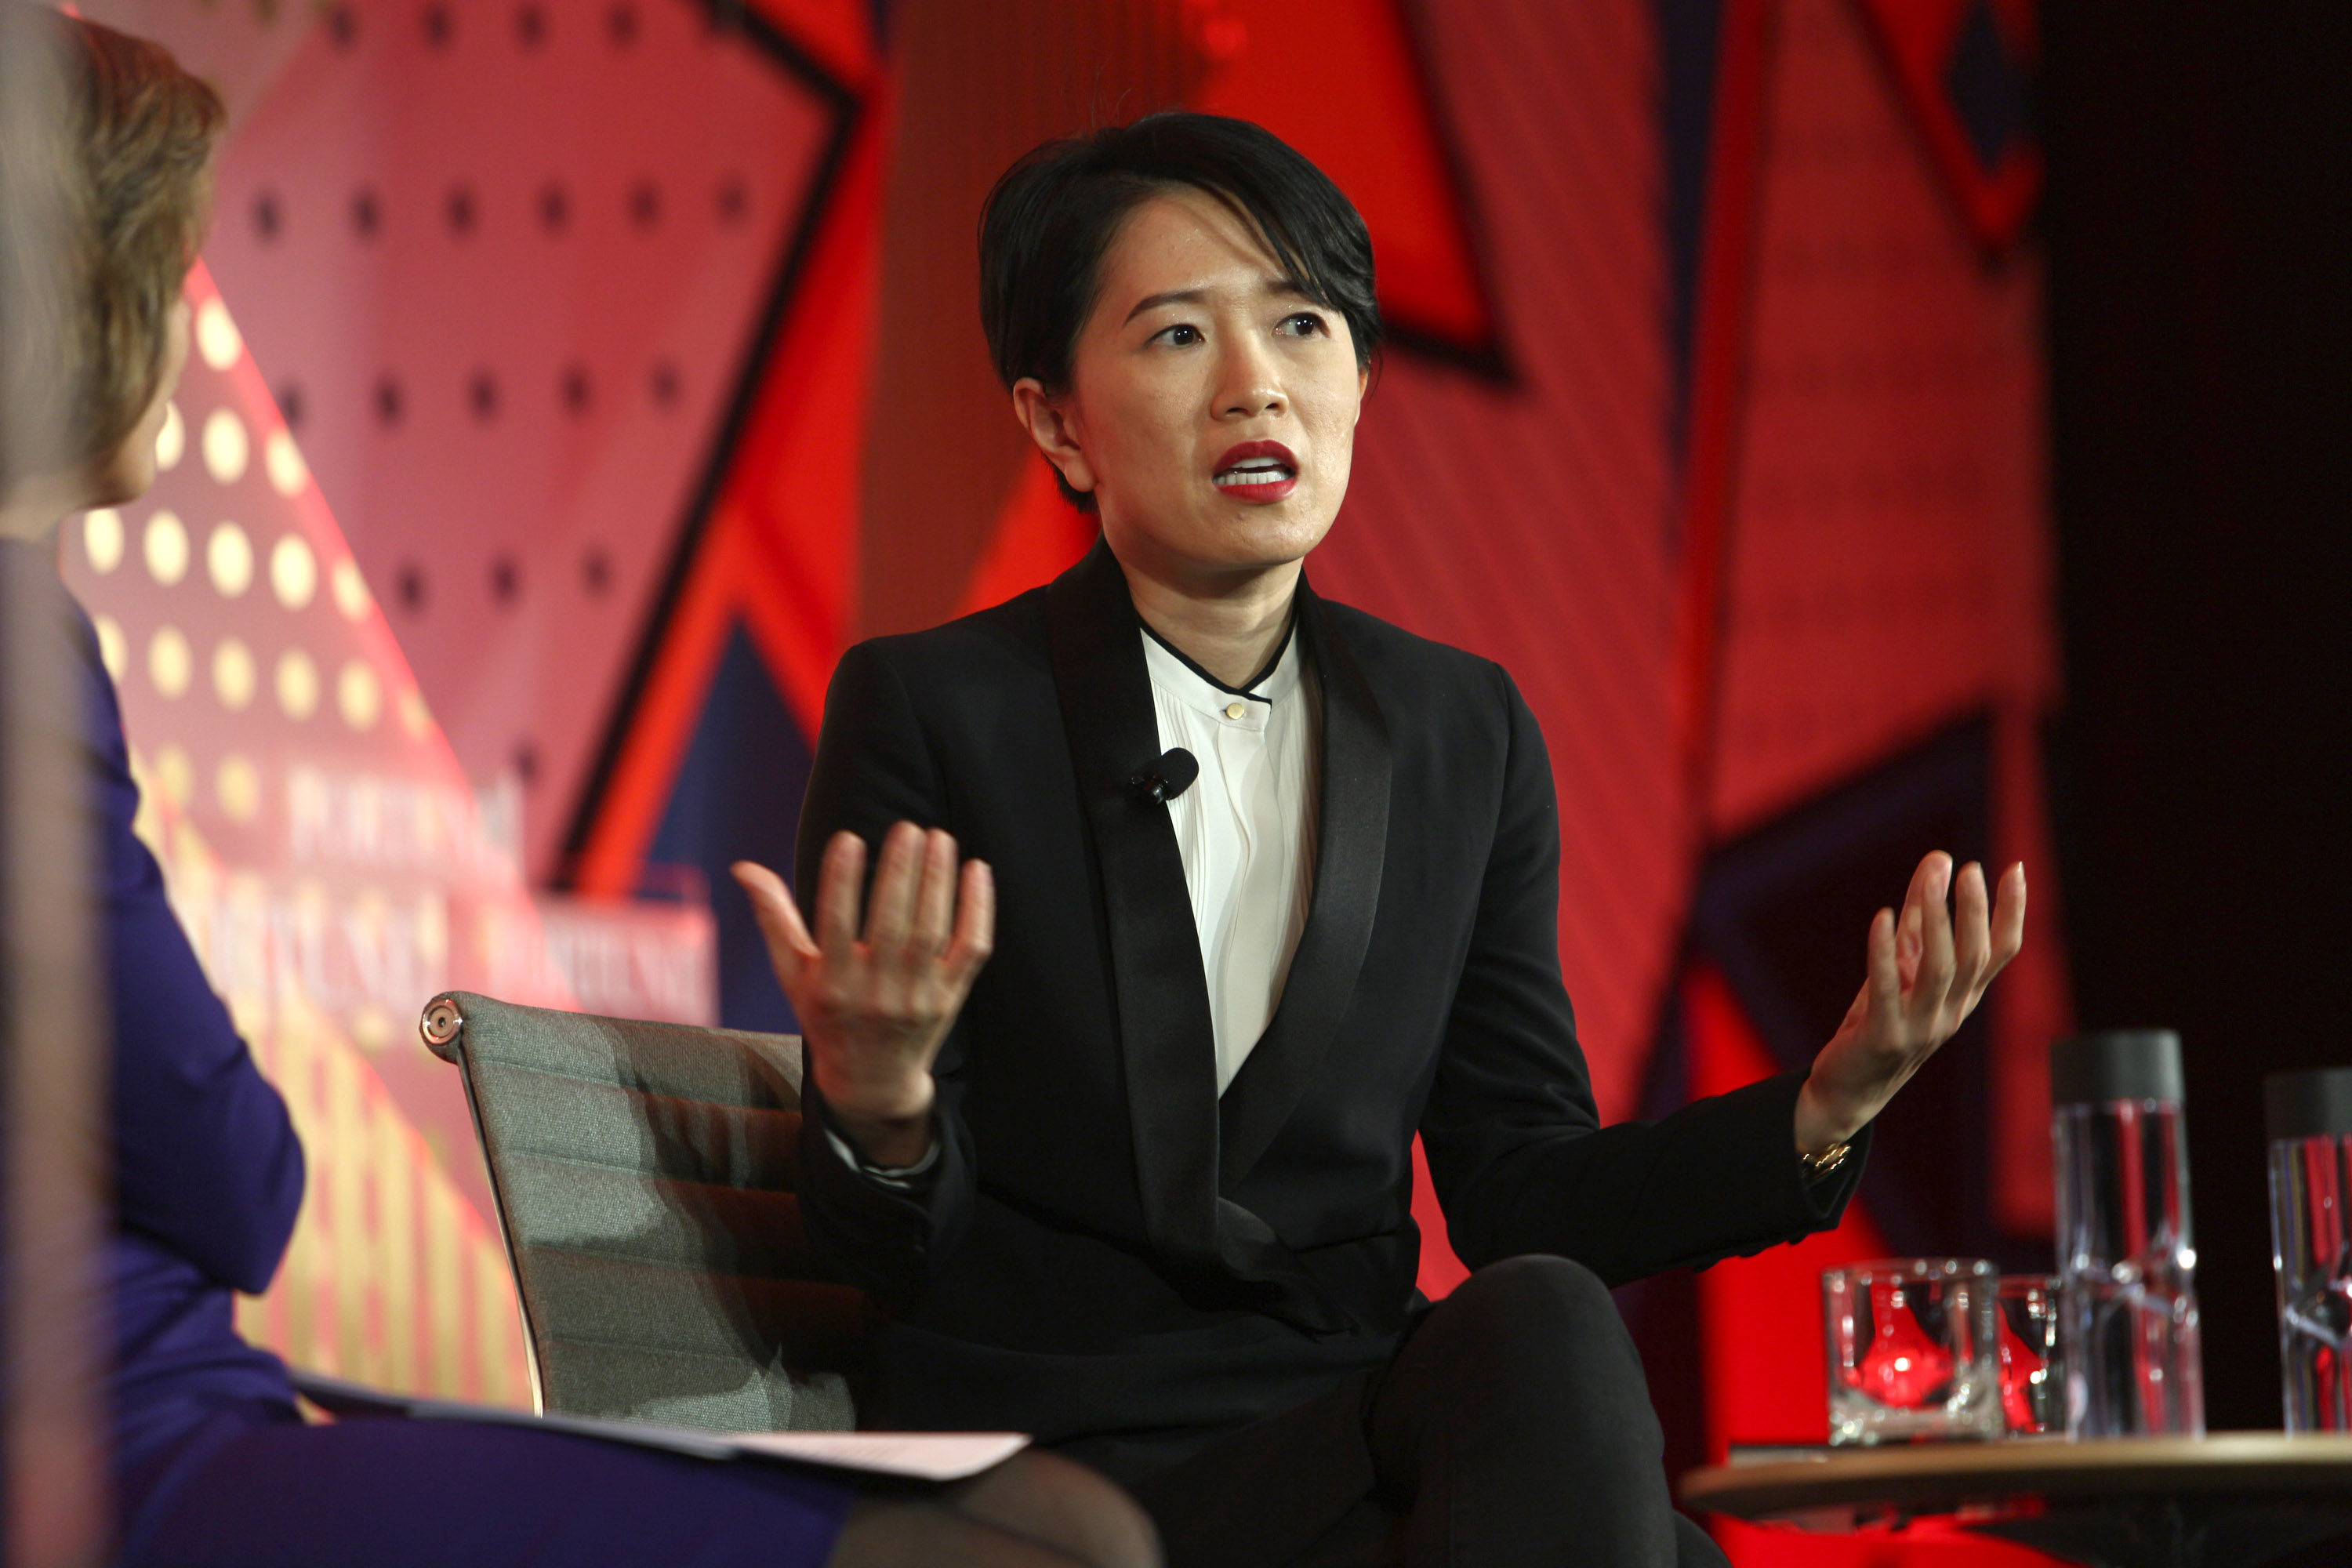 1:1 LEADING WITH PURPOSE How innovation and collaboration lead to business success. Rachel Duan, President and CEO, GE Greater ChinaInterviewer: Pattie Sellers, Fortune